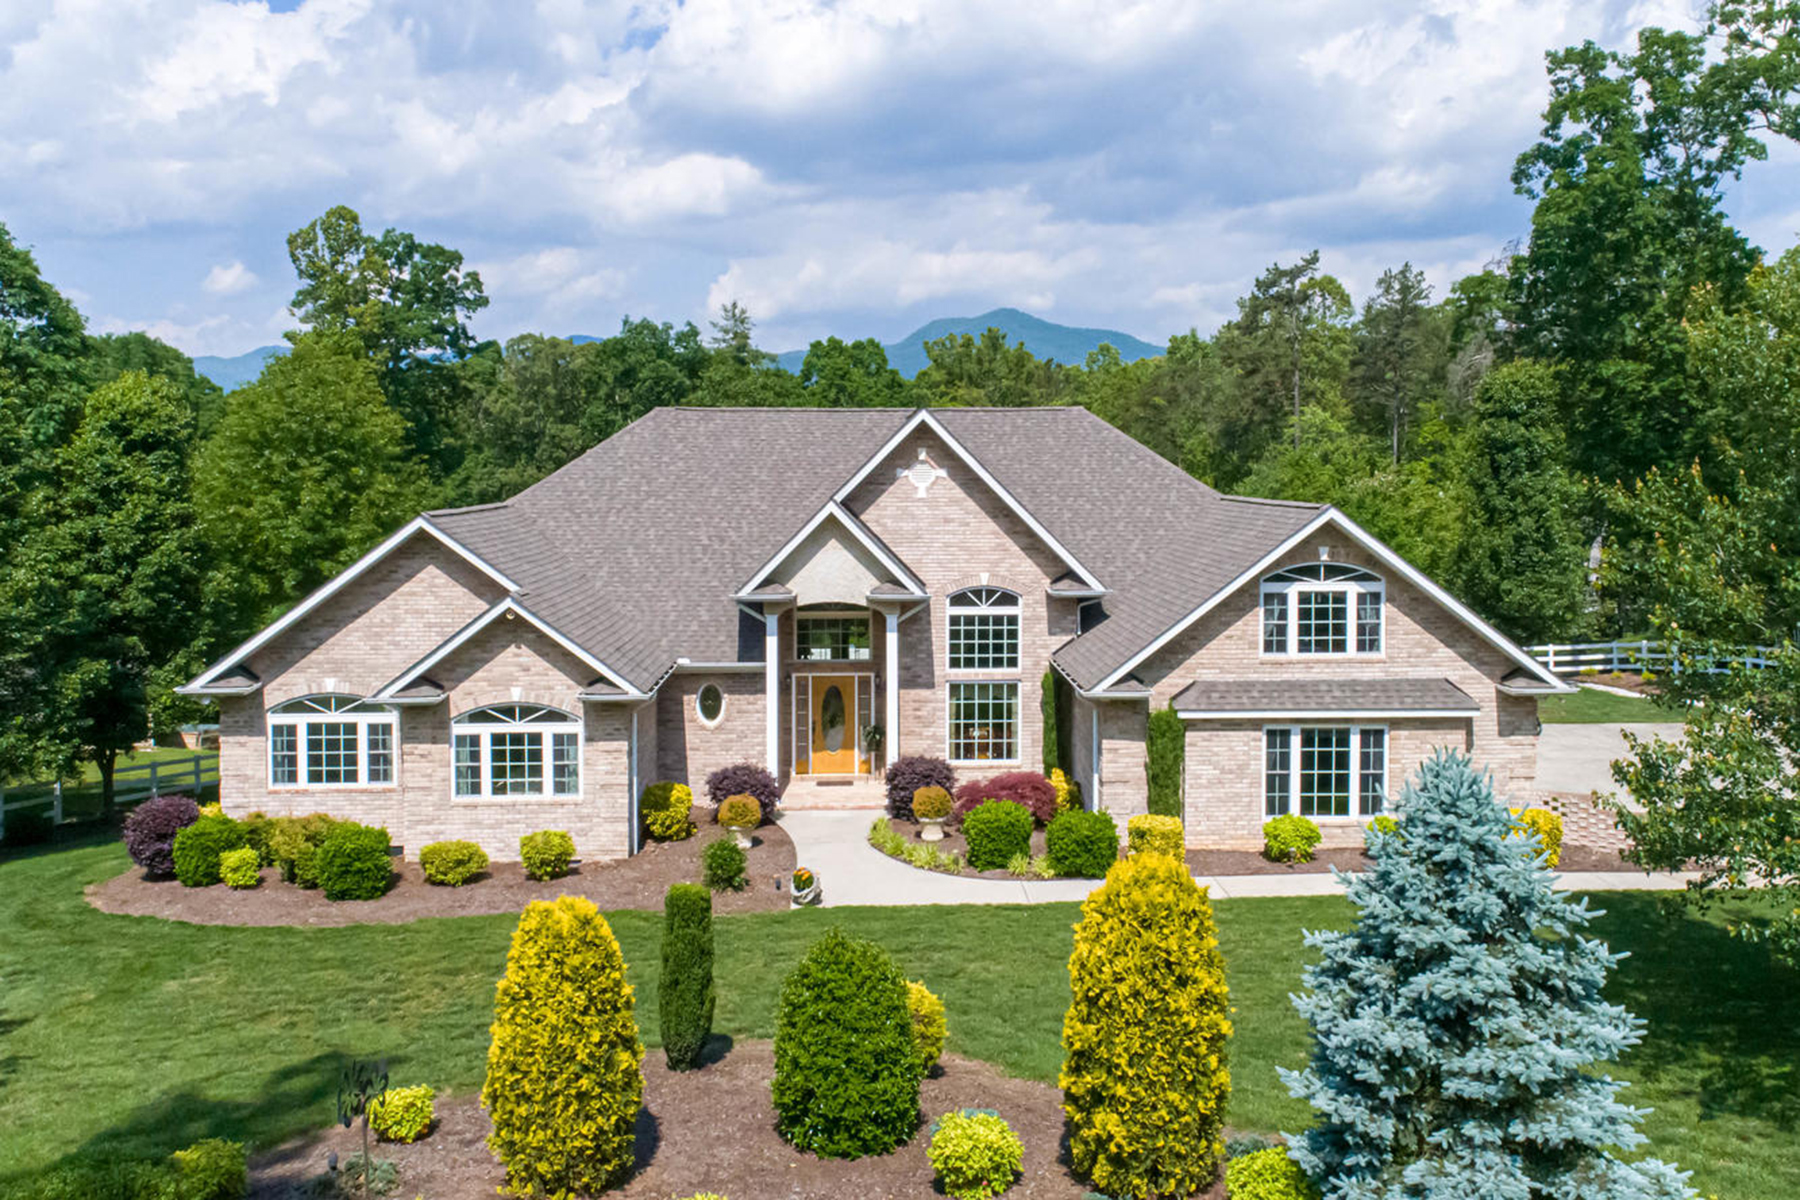 Single Family Homes for Active at CANDLER 187 Rhinehart Rd Candler, North Carolina 28715 United States